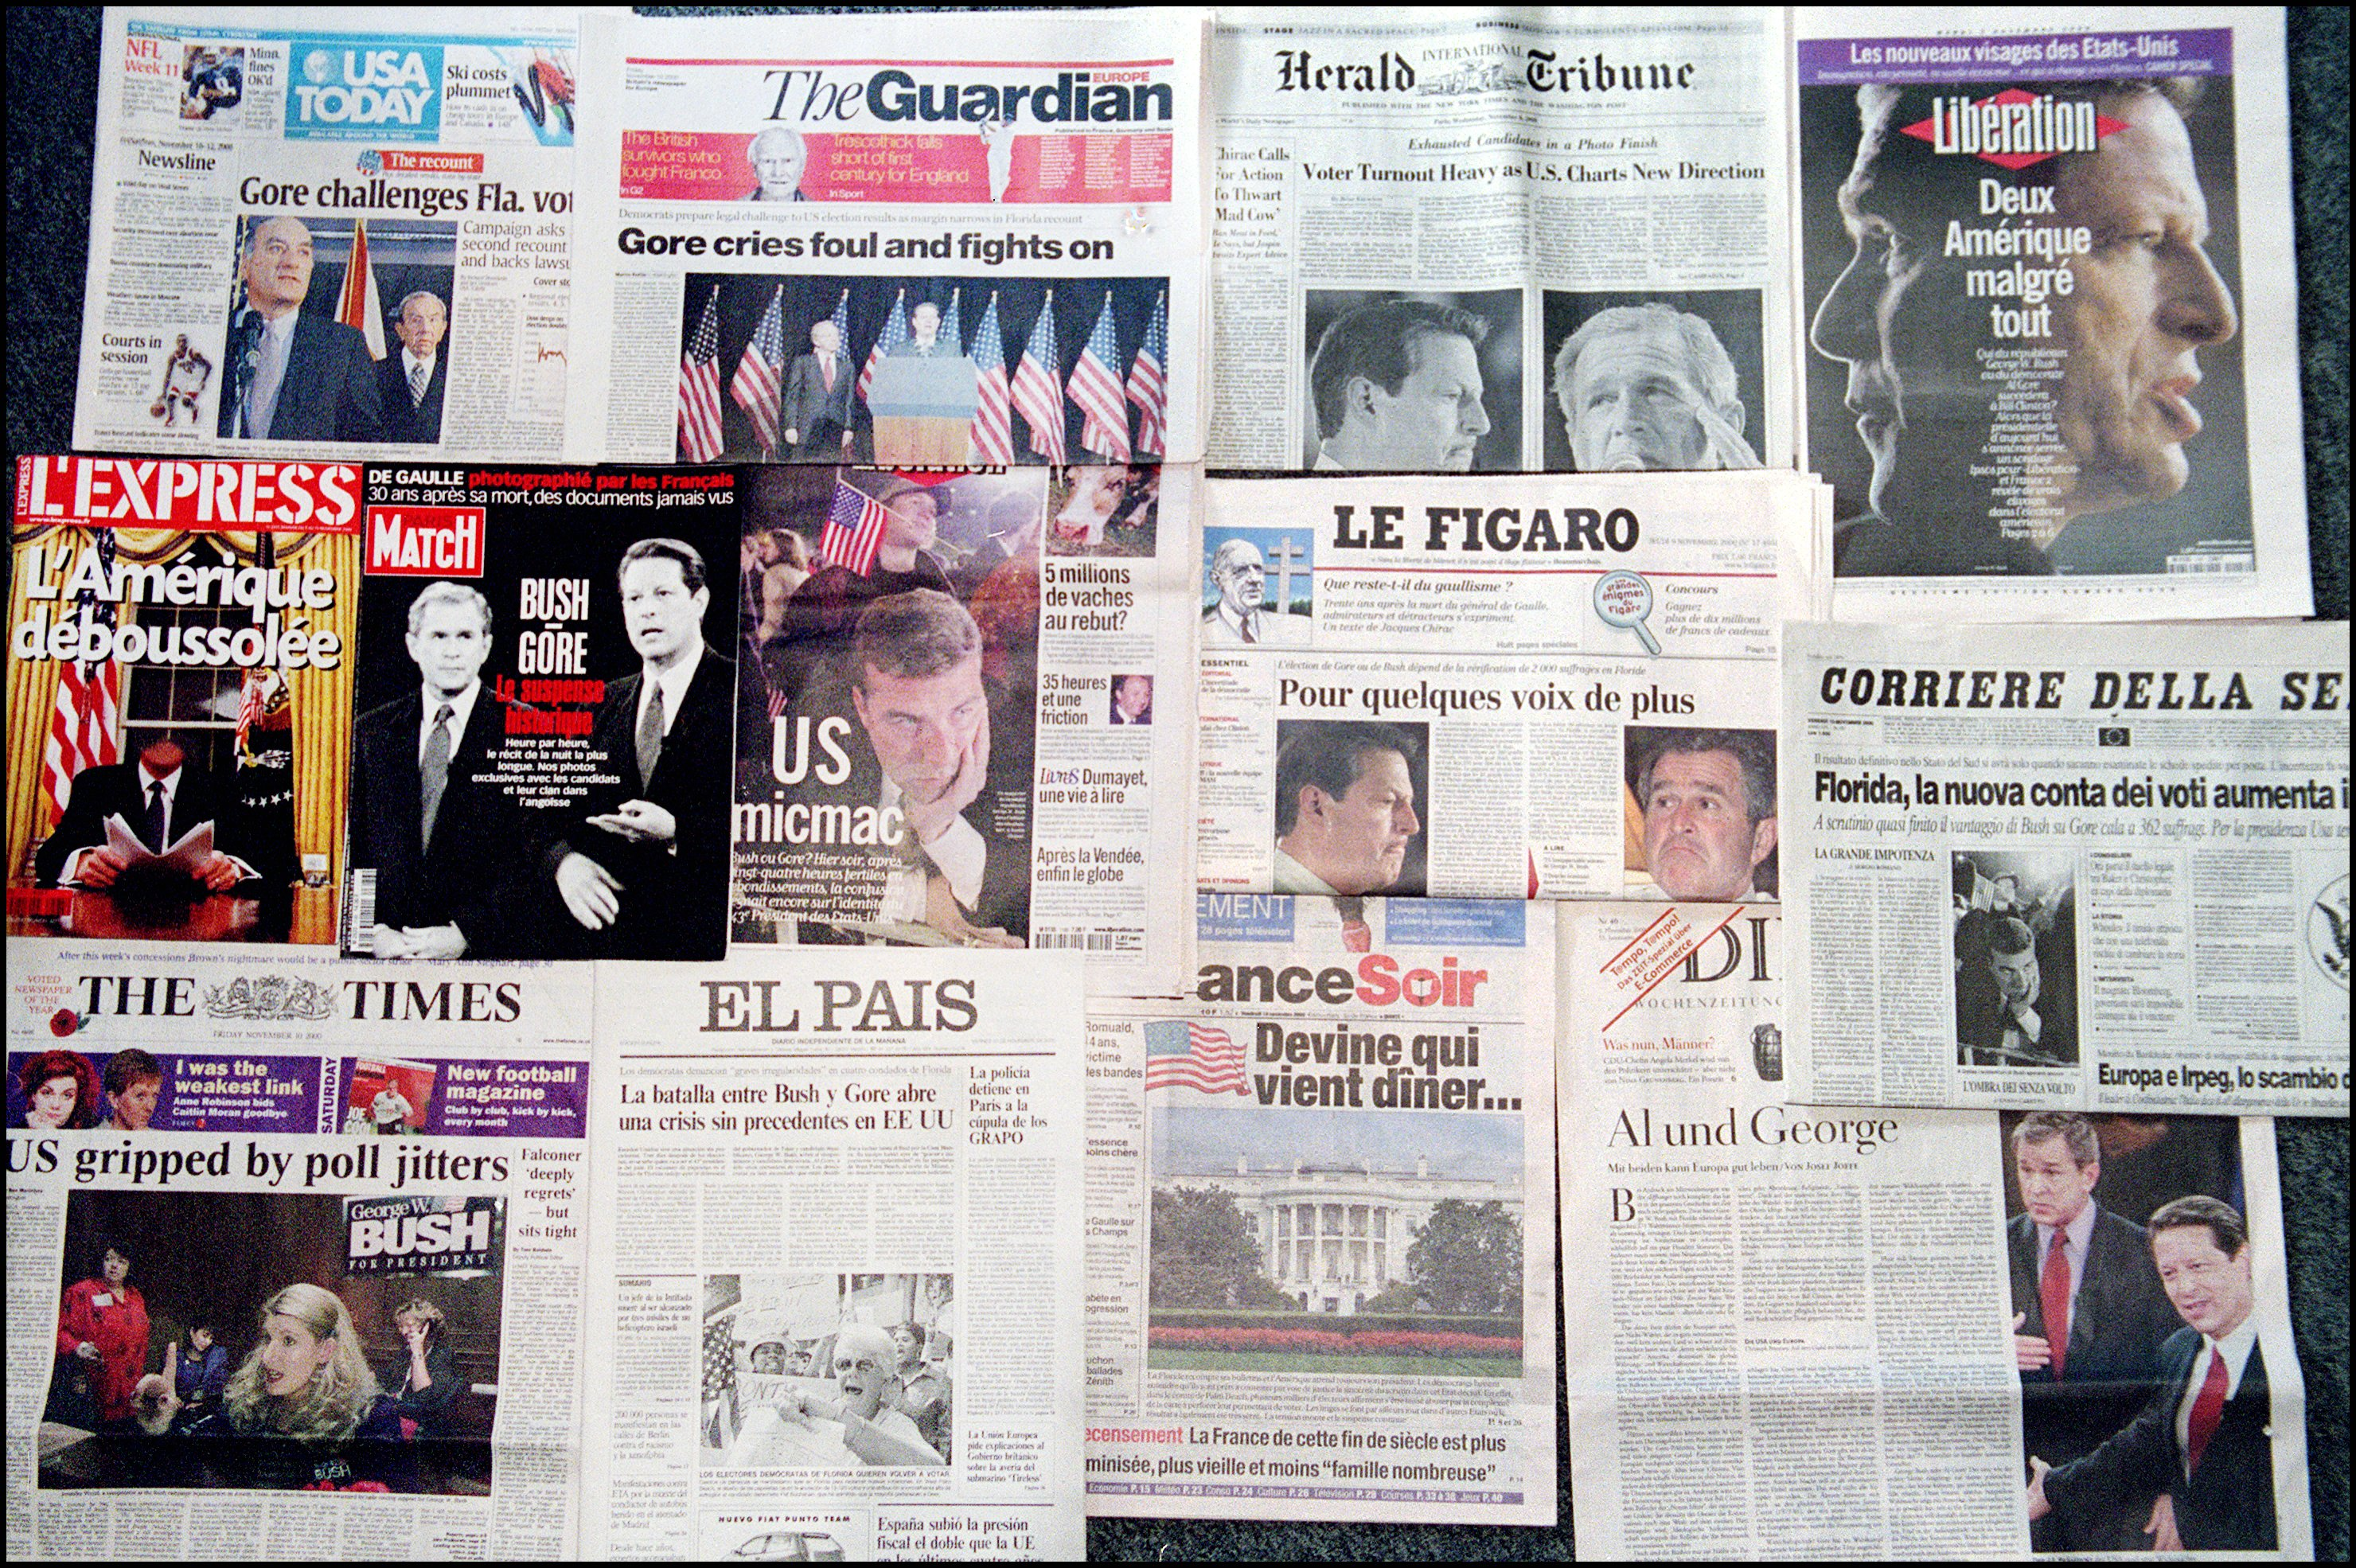 FRANCE - NOVEMBER 10: A Review Of Papers After The Failed Announcement Of U.S. Presidential Run Results On October 11Th, 2000 In Paris, France. (Photo by Alexis DUCLOS/Gamma-Rapho via Getty Images)